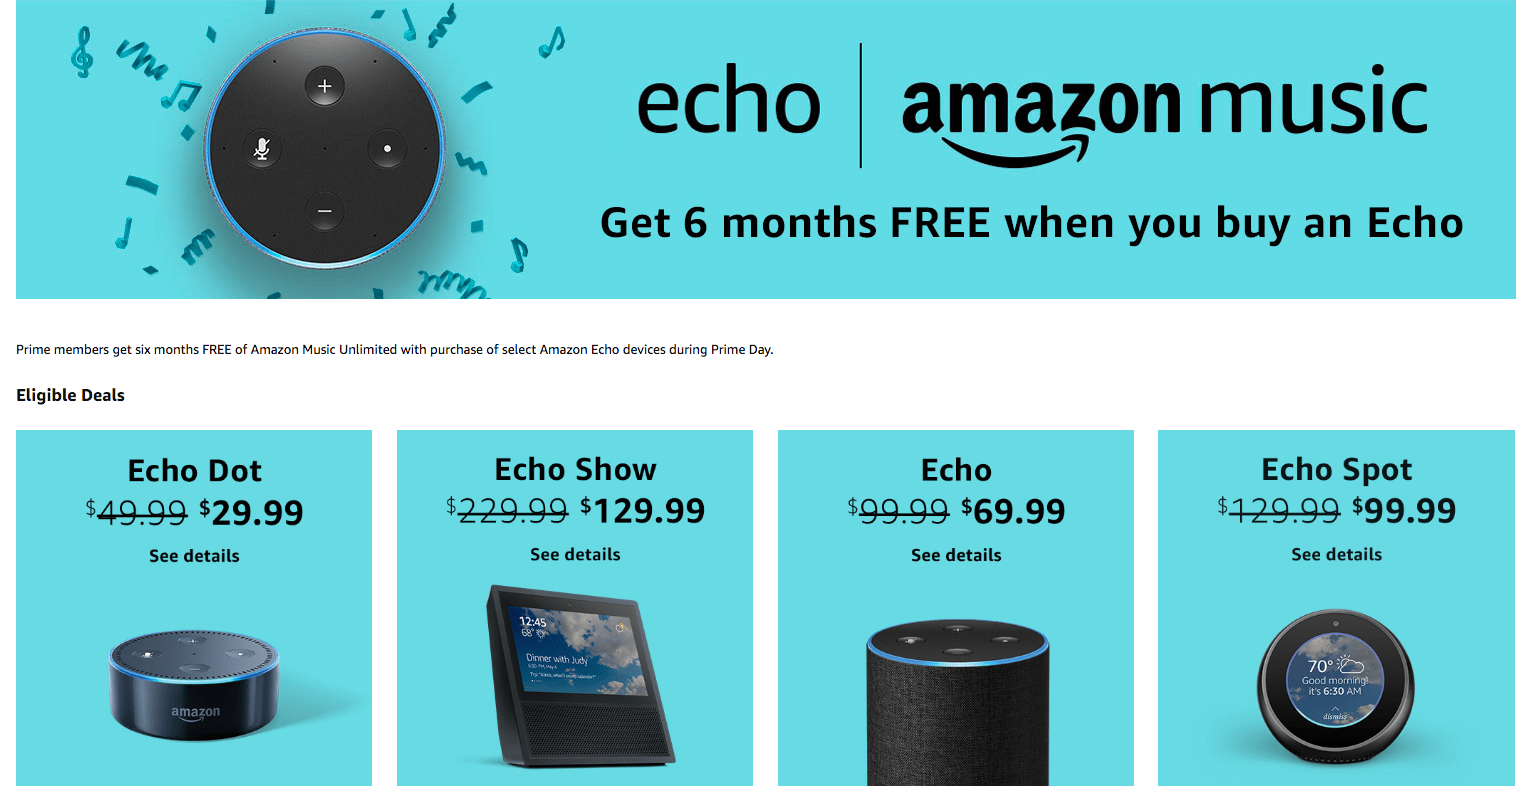 free 6 months amazon music unlimited   47 value  with echo